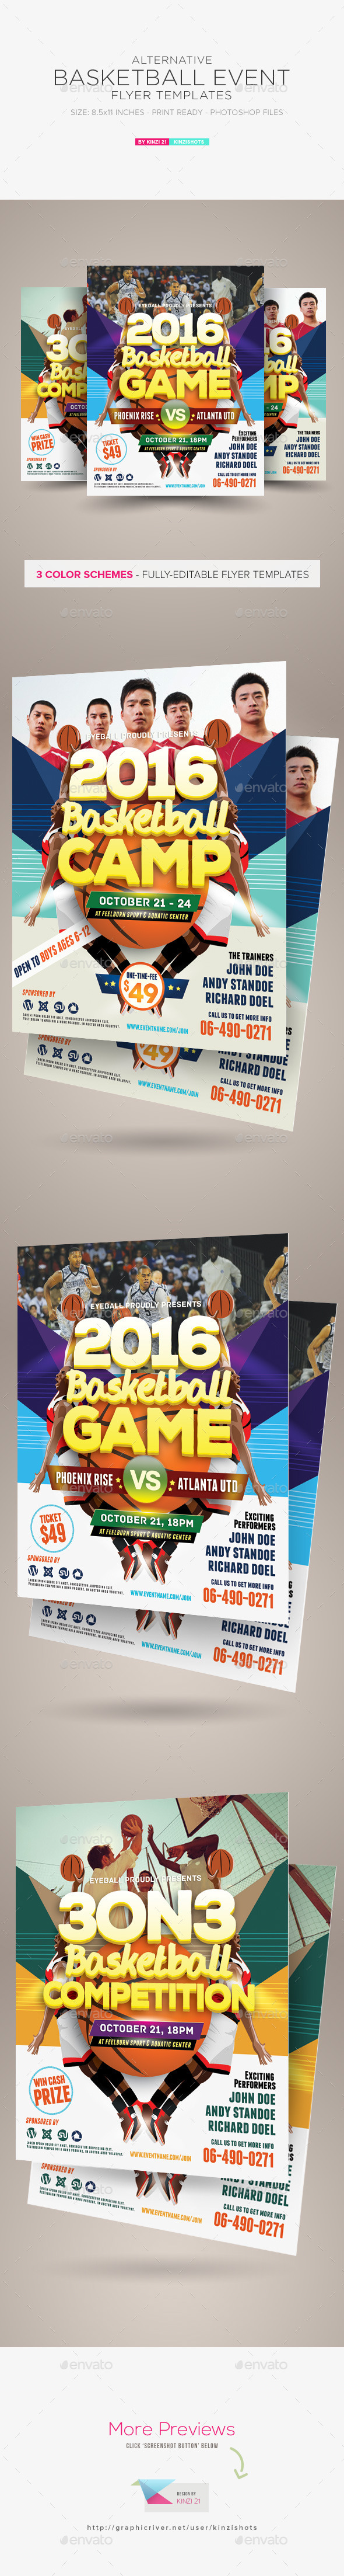 Basketball Event Flyer Templates - Sports Events